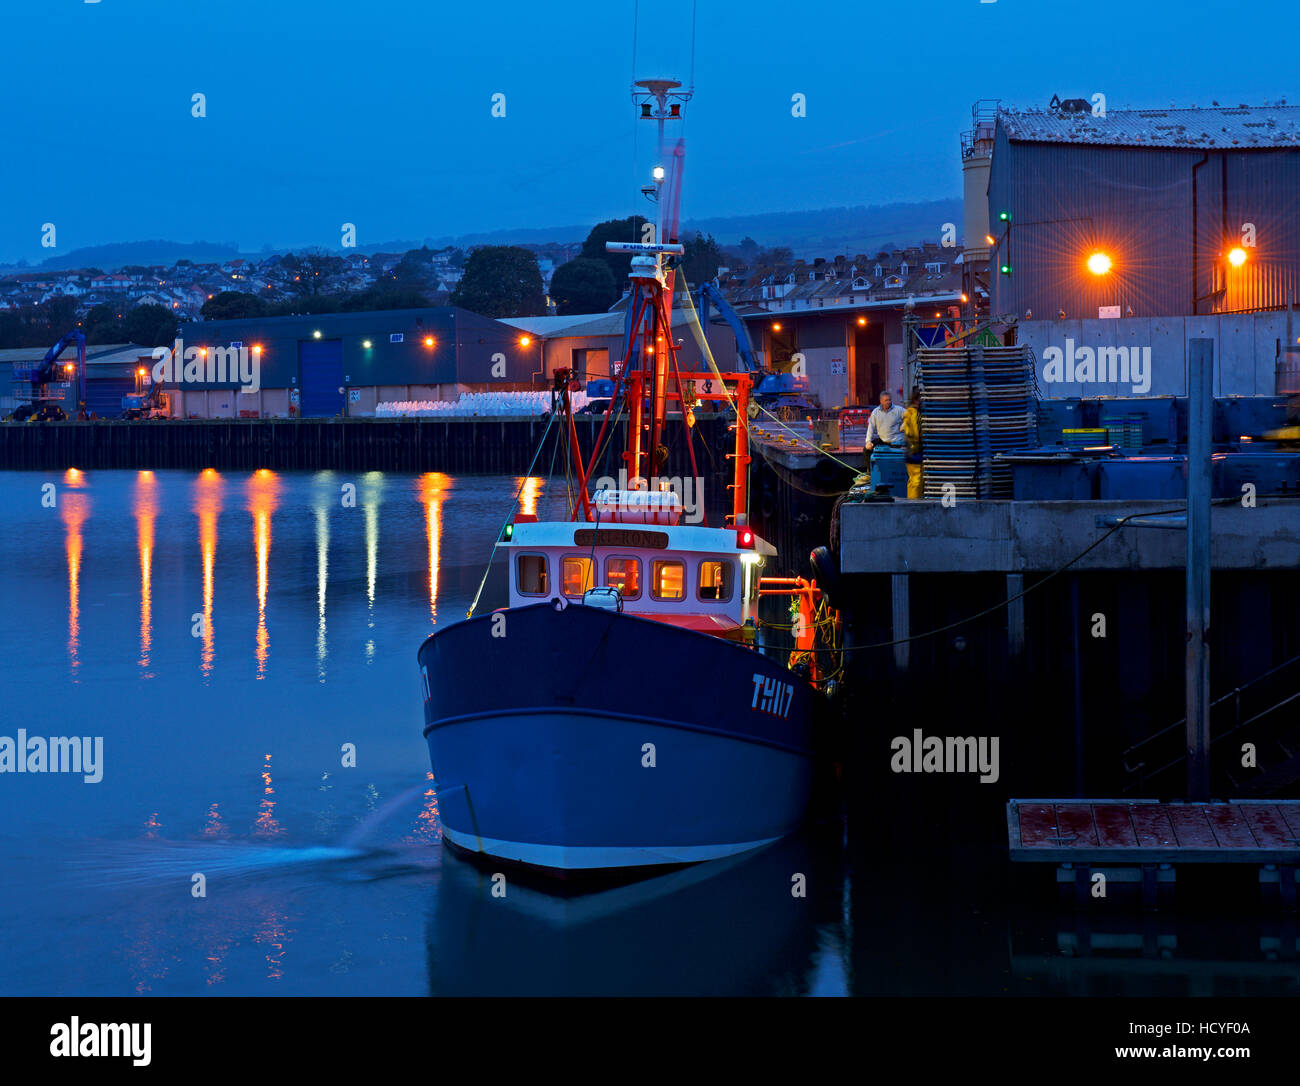 Trawler unloading fish at the quayside, Teignmouth, Devon, England UK Stock Photo